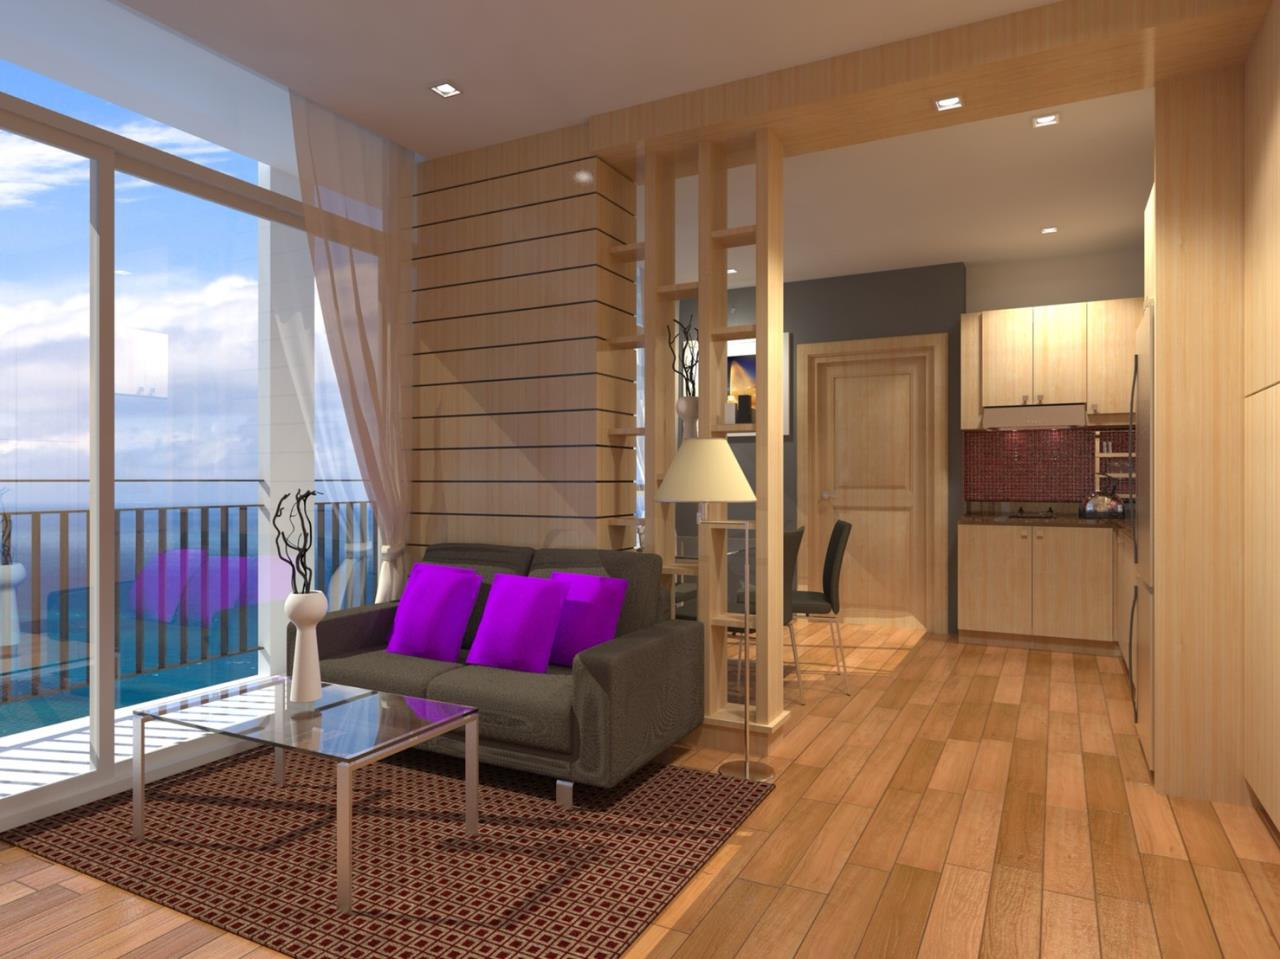 Signature Realty ( Thailand ) Co Ltd Agency's Furnished 1bedroom 44 sq.m condo with jacuzzi floor 11-20 at The Grand Jomtein Beach Pattaya 8